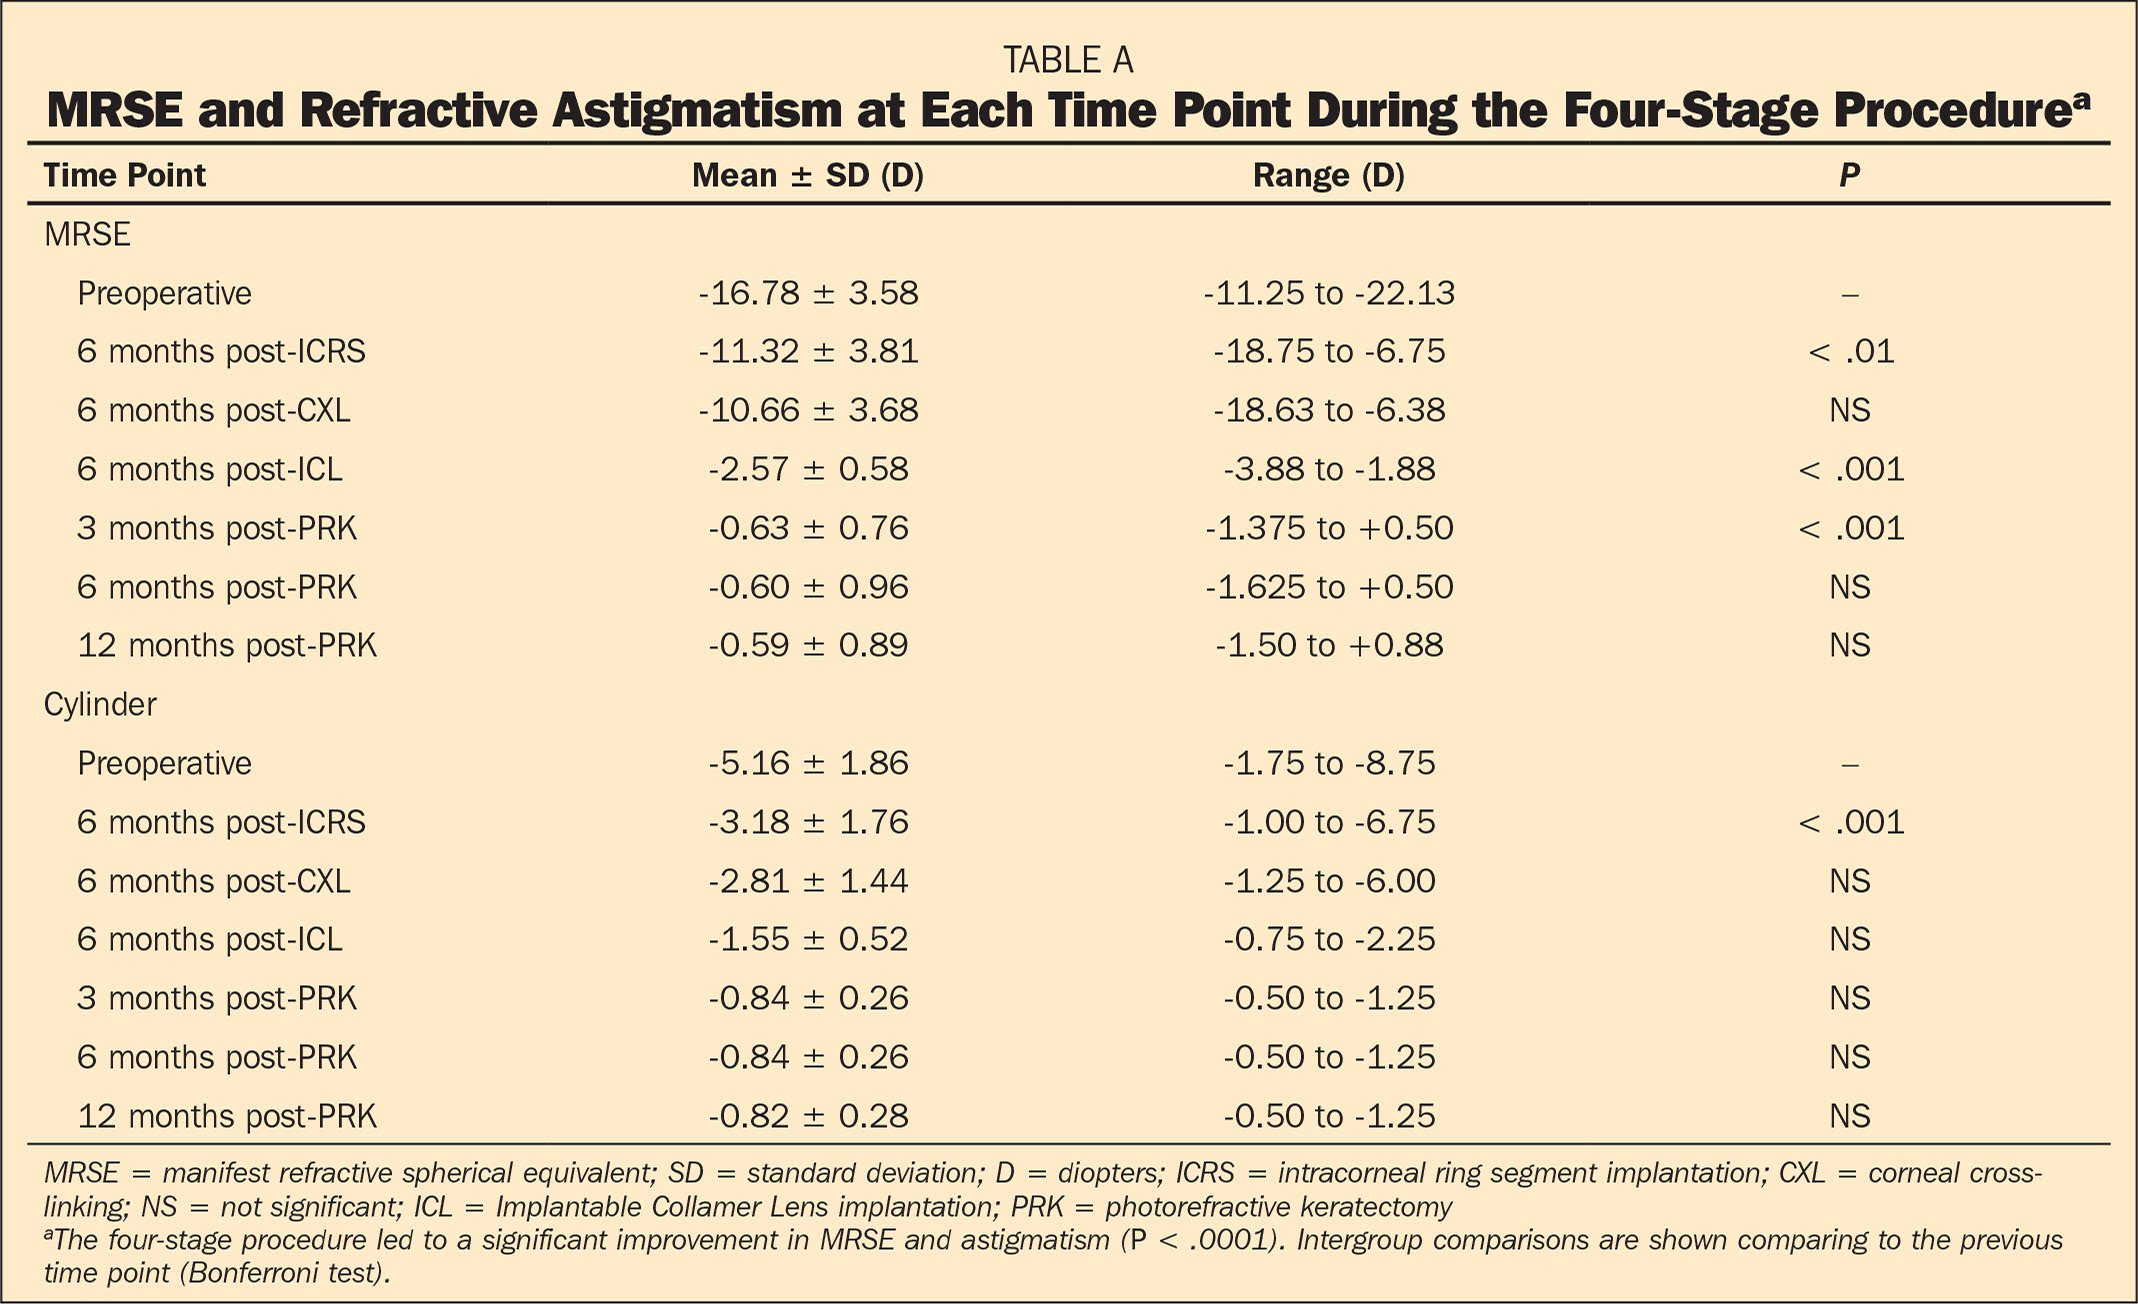 MRSE and Refractive Astigmatism at Each Time Point During the Four-Stage Procedurea